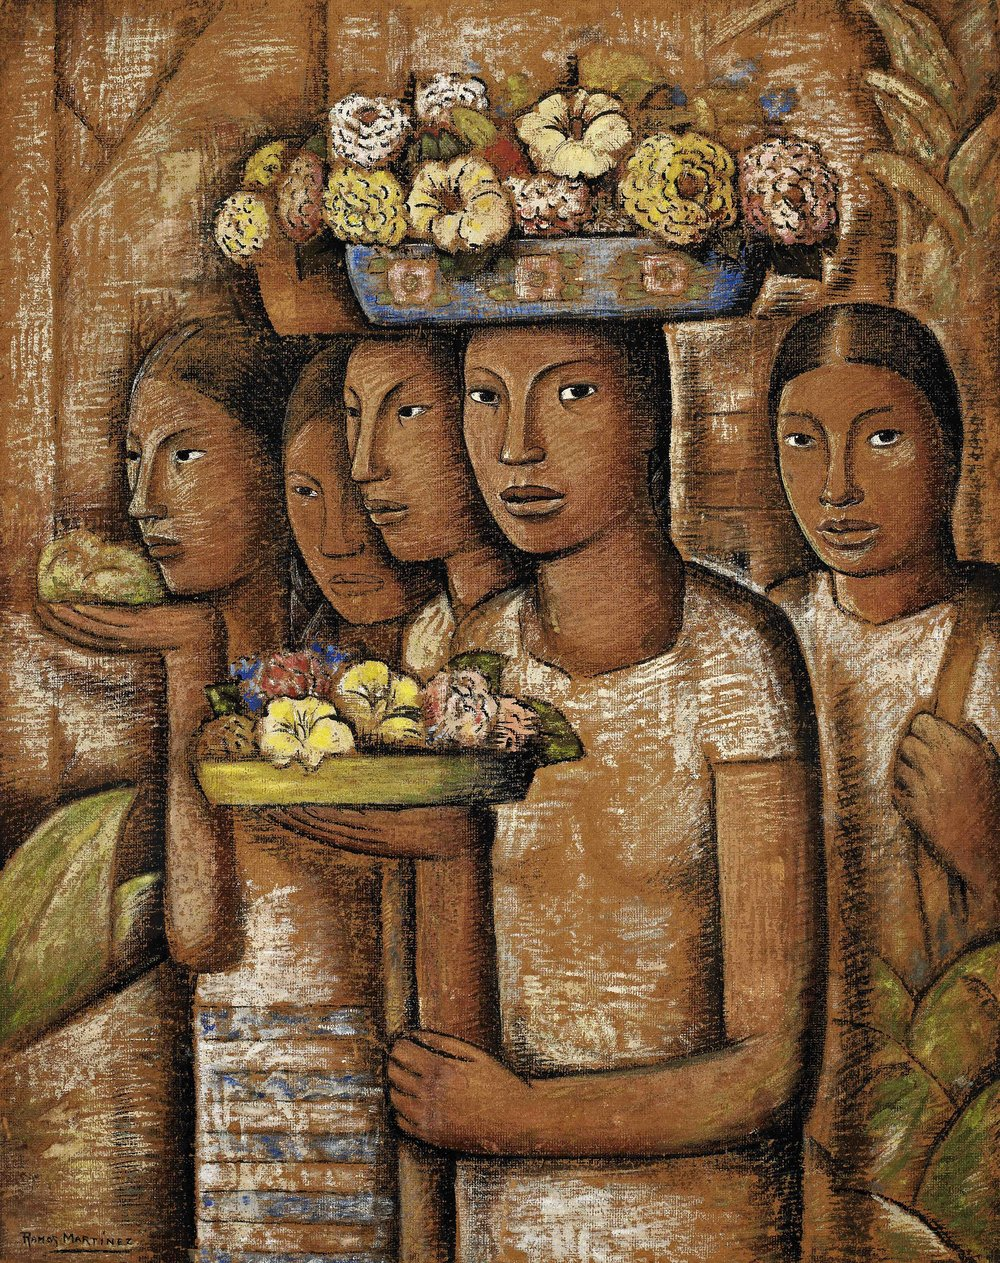 Mujeres Indígenas de Oaxaca / Native Women from Oaxaca  1944 oil on board / óleo sobre tabla 44.8 x 35.5 inches; 113.7 x 90.2 centímetros